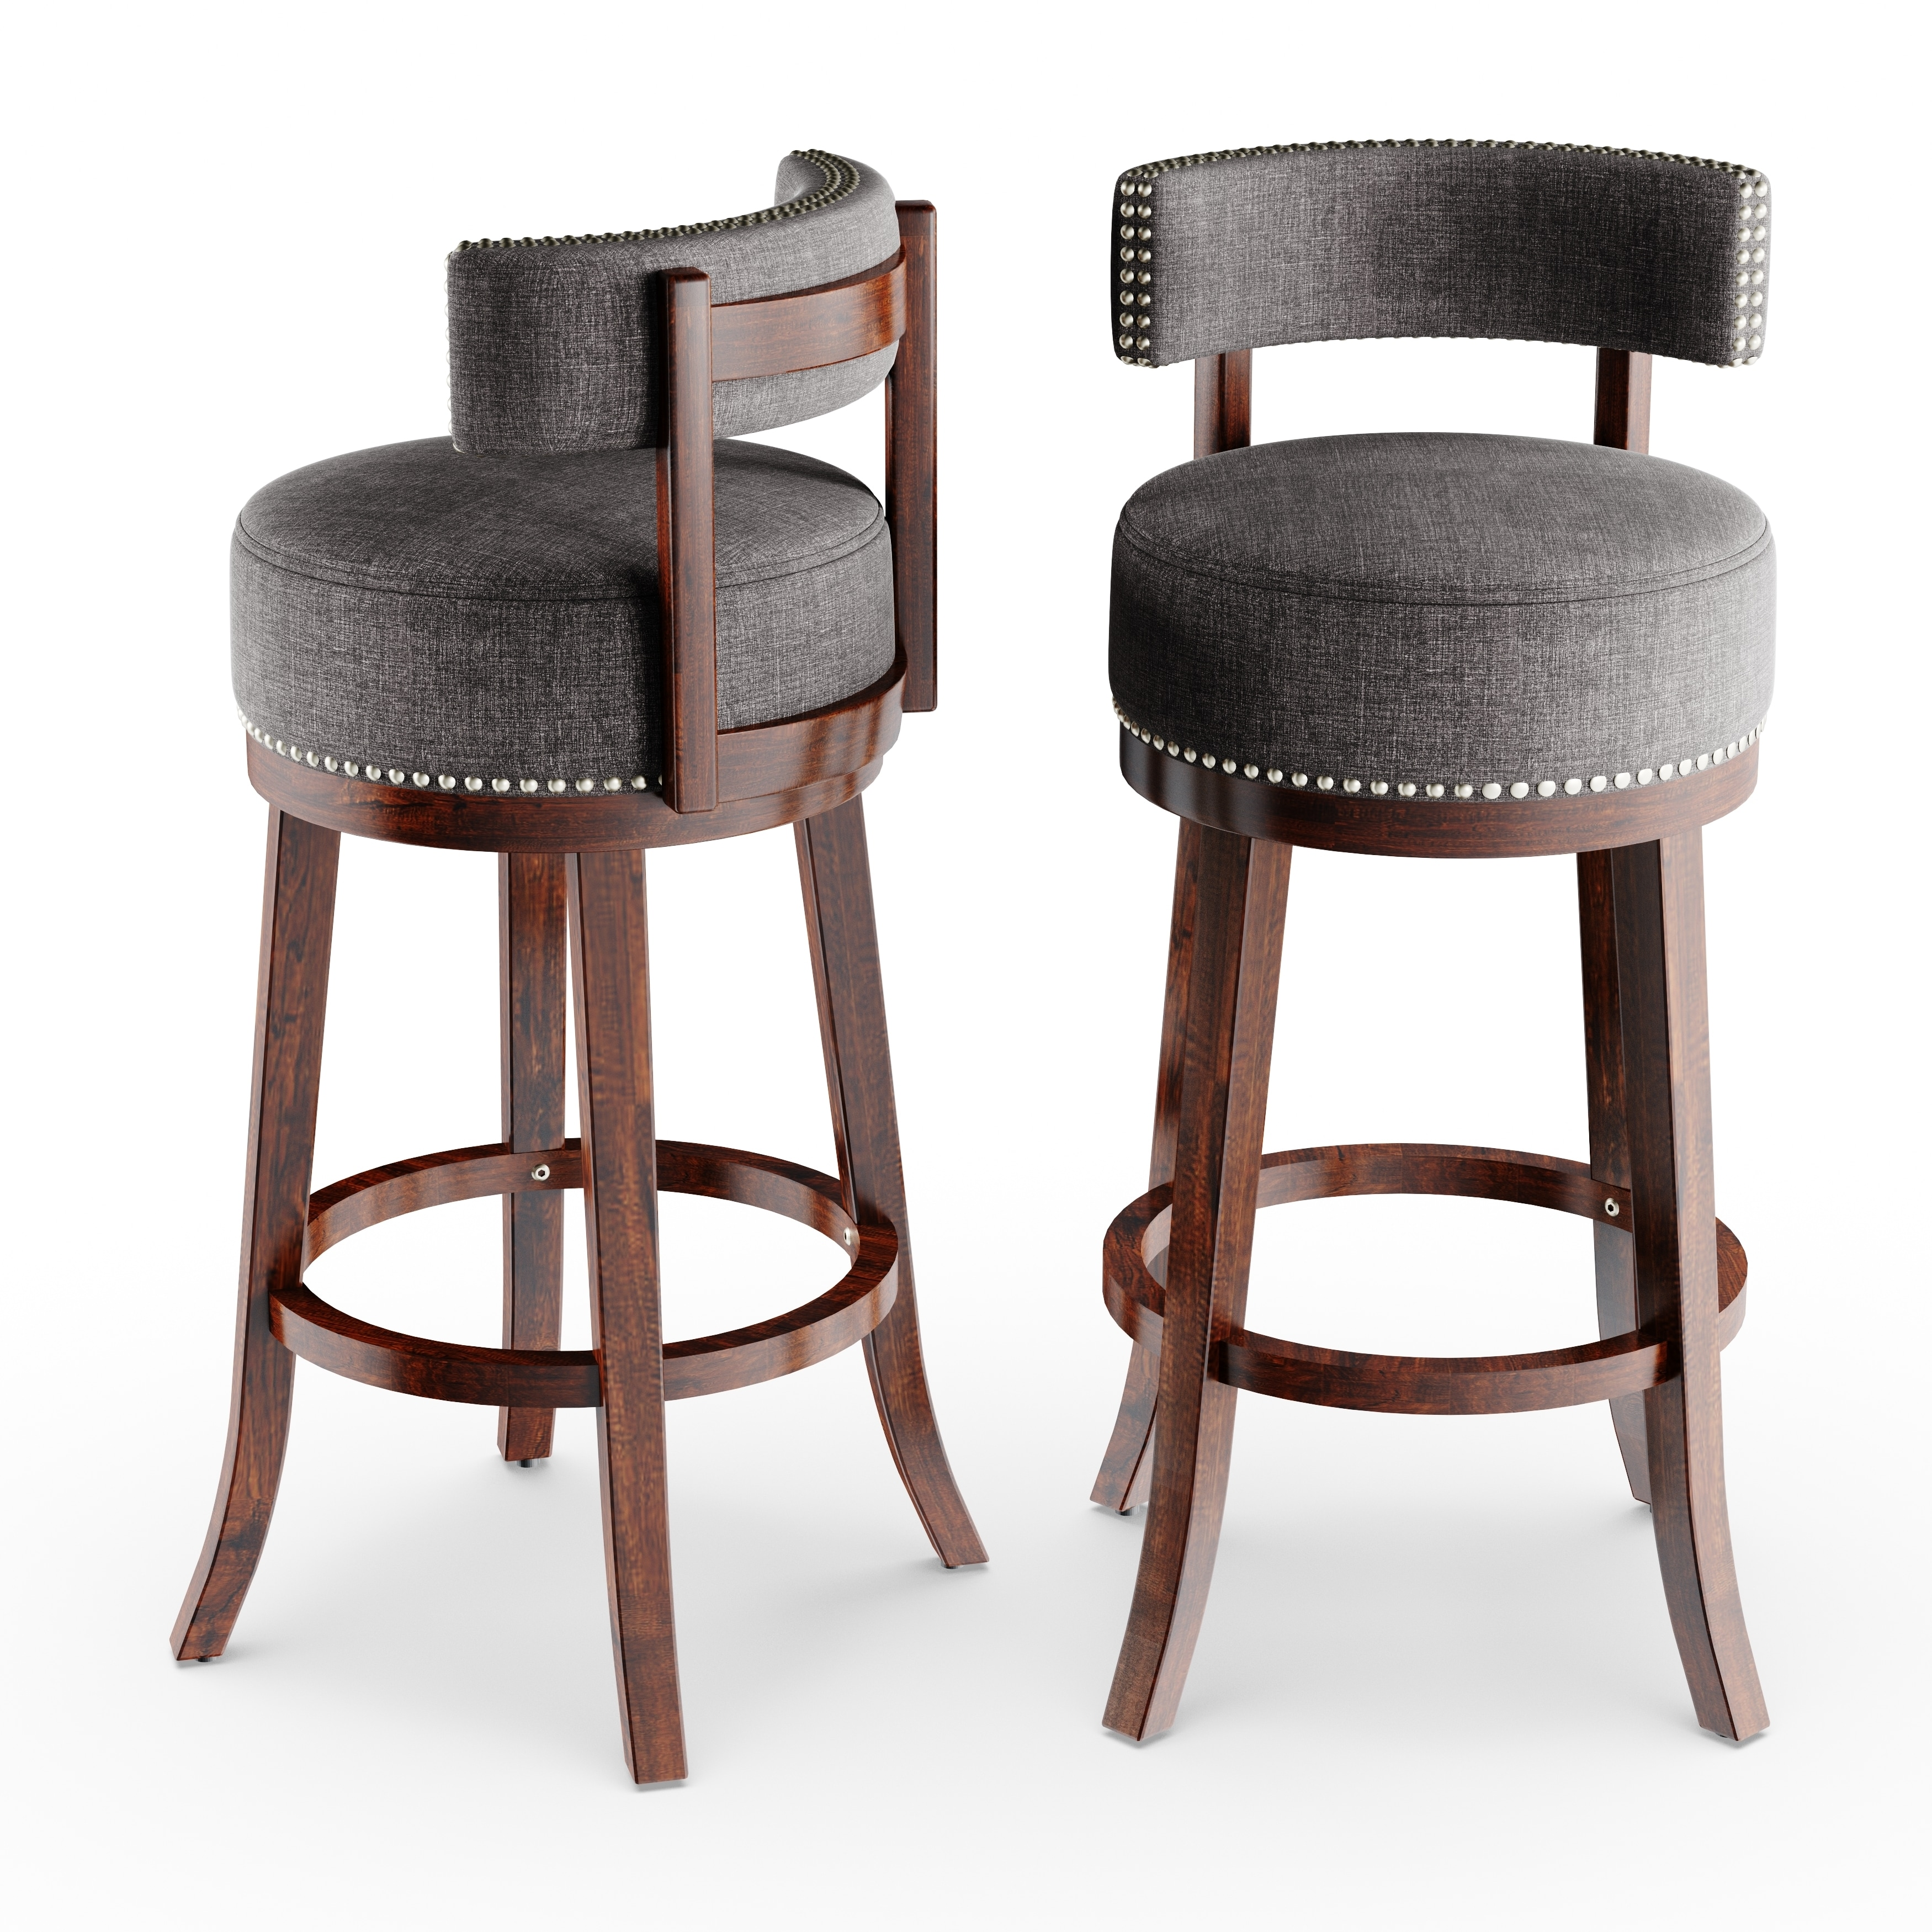 Shop gracewood hollow pullman swivel bar stool set of 2 on sale free shipping today overstock com 20000986